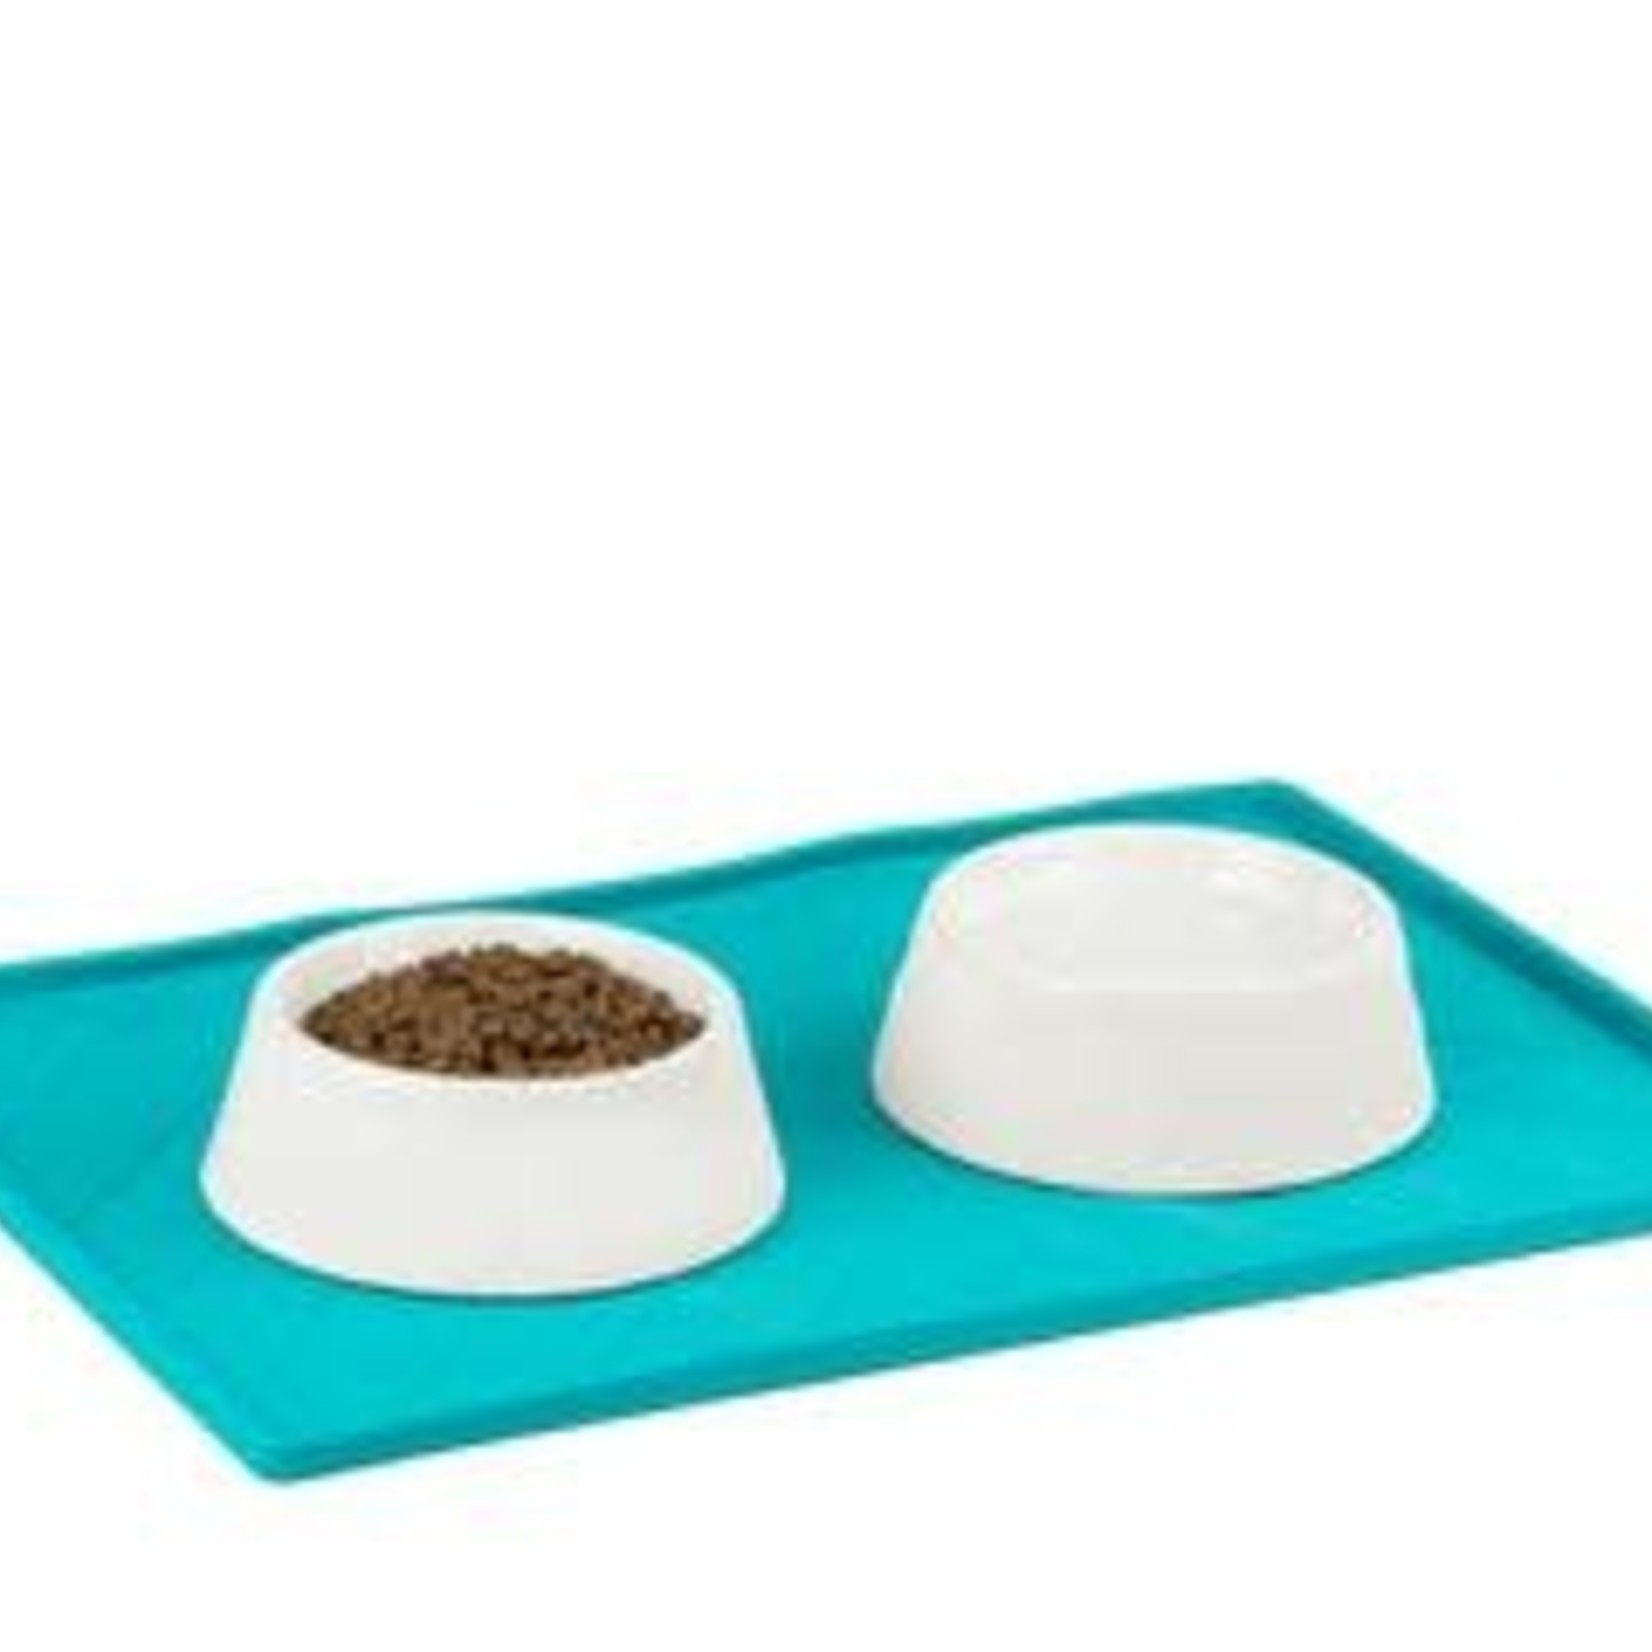 Messy Mutts Messy Mutts Silicone Food Mat Medium Blue